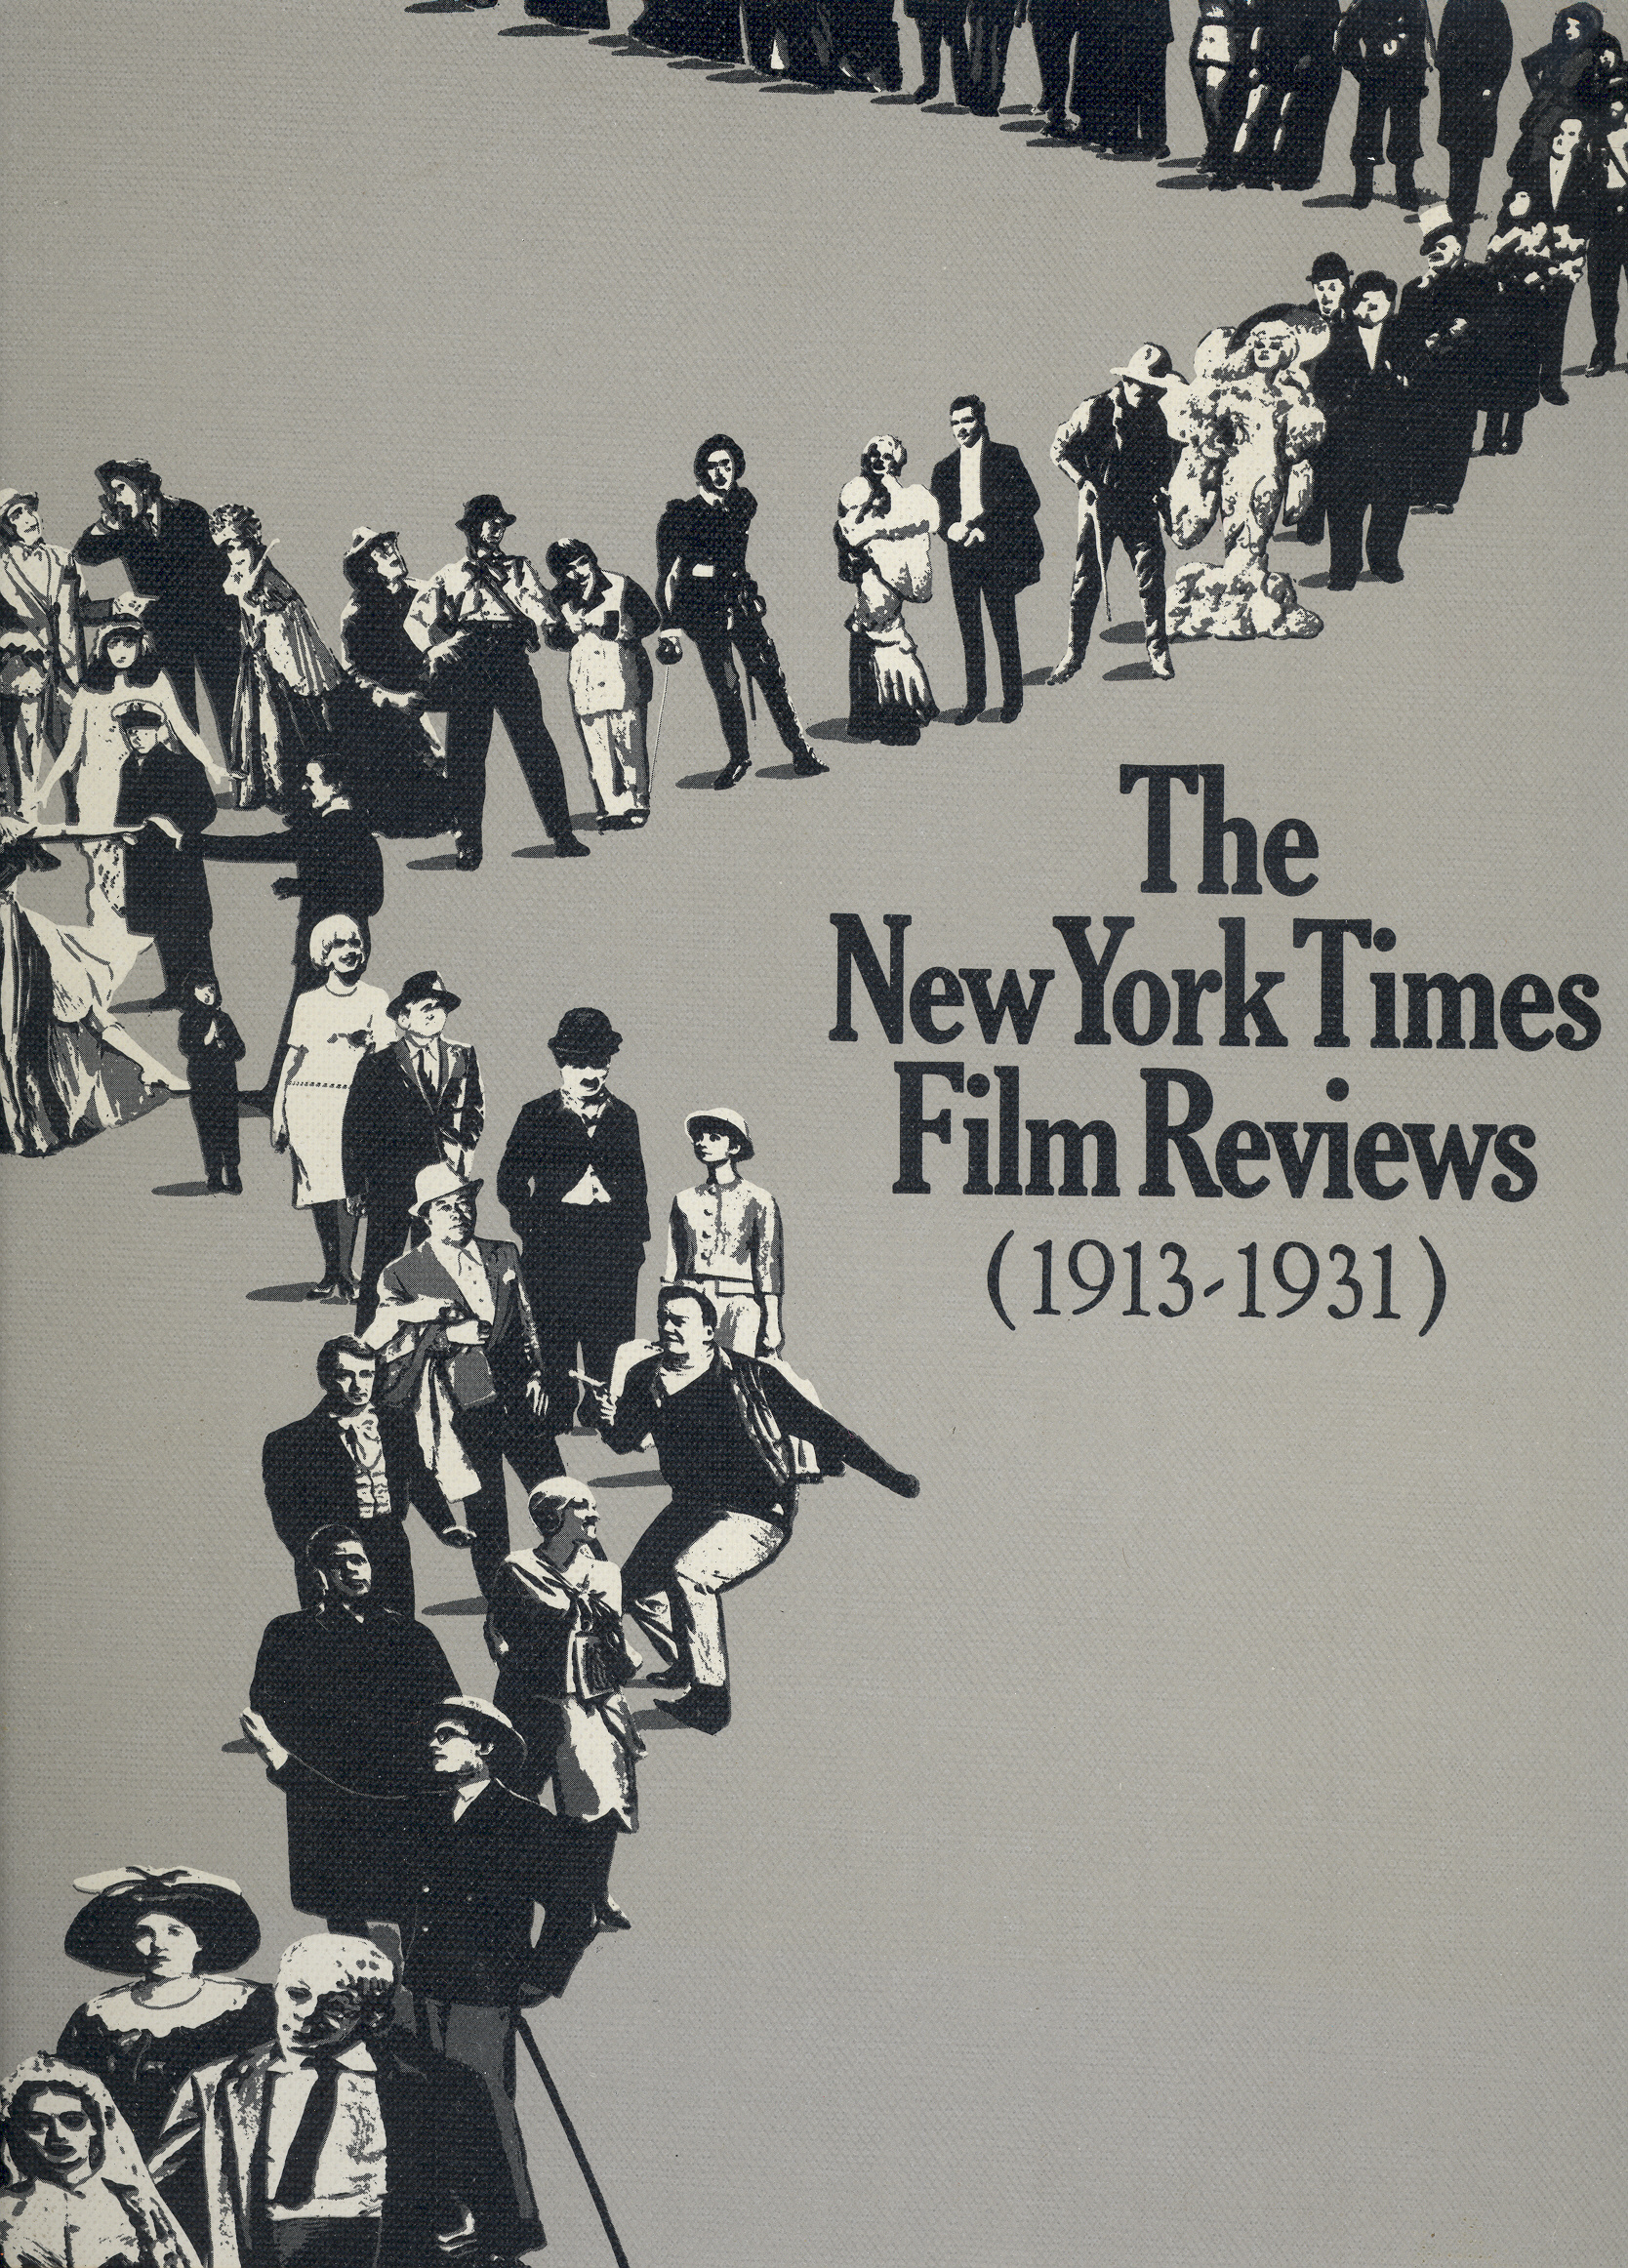 Times film review